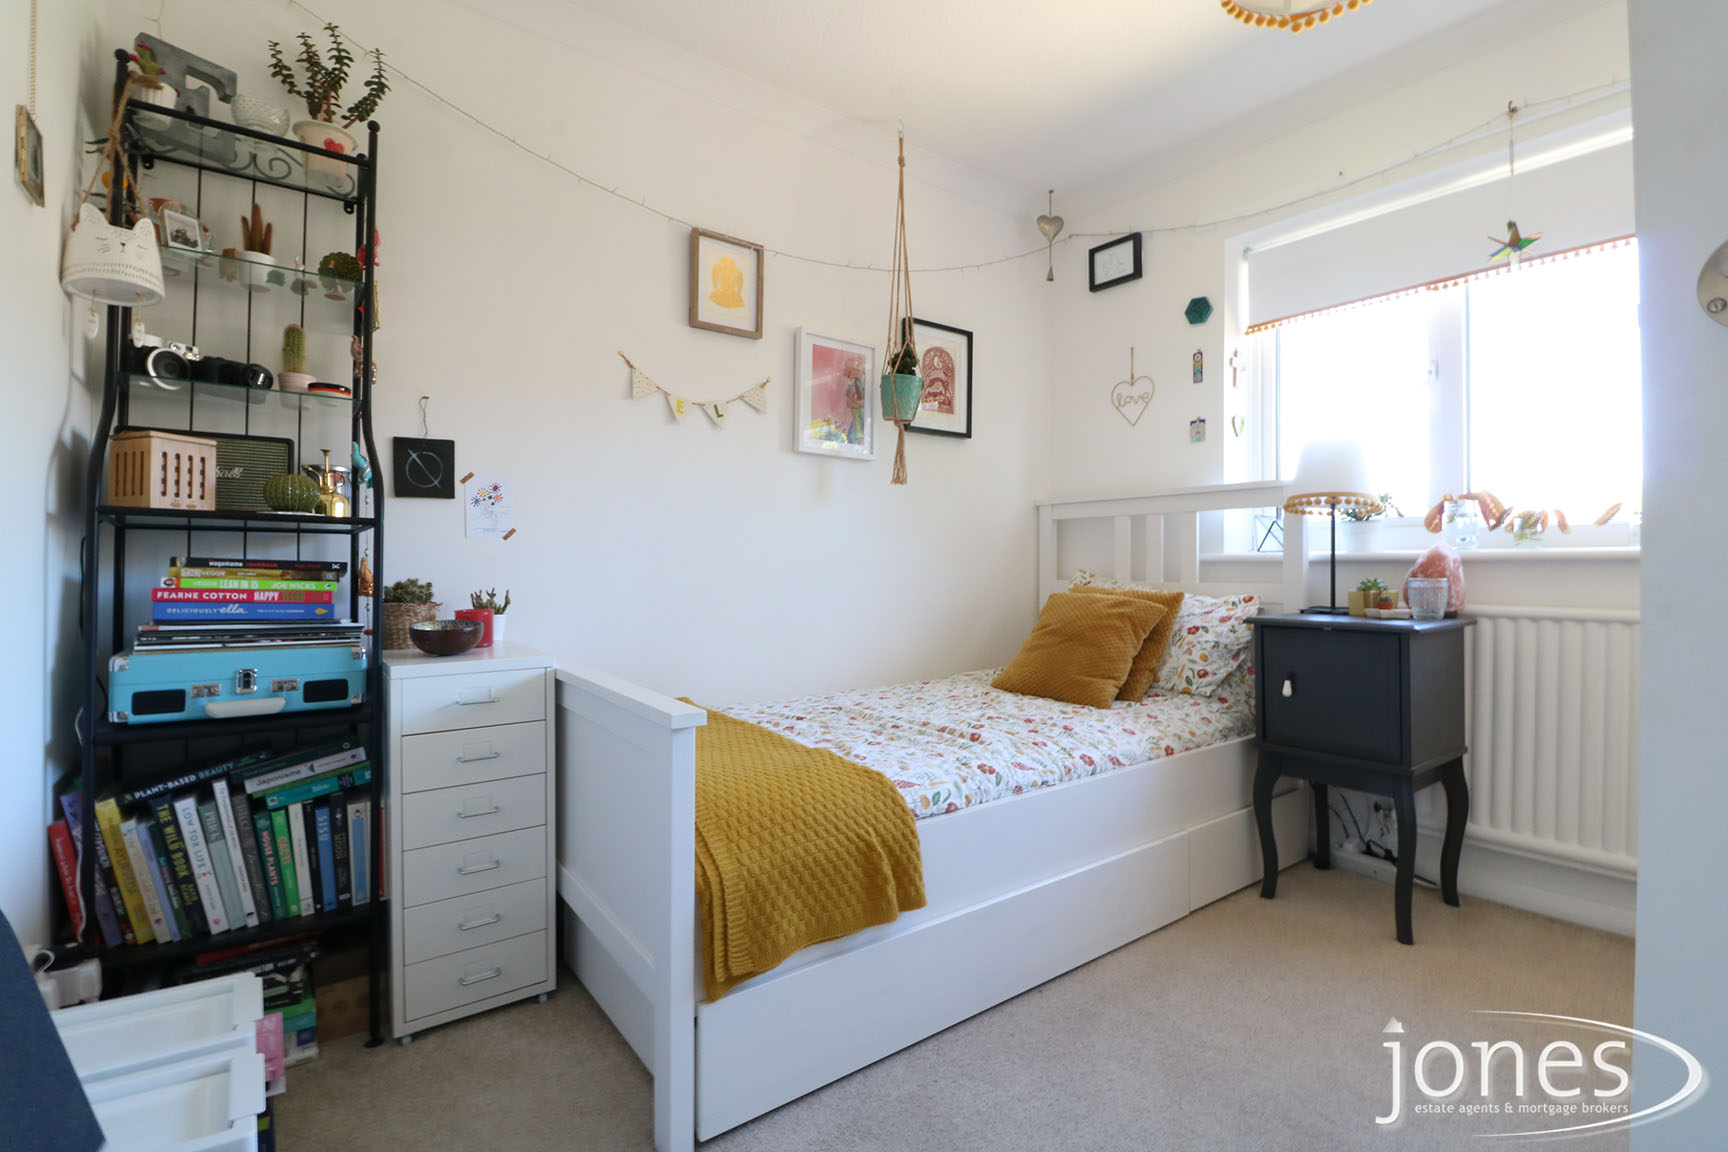 Home for Sale Let - Photo 12 Kielder Drive,Darlington,DL1 2BD